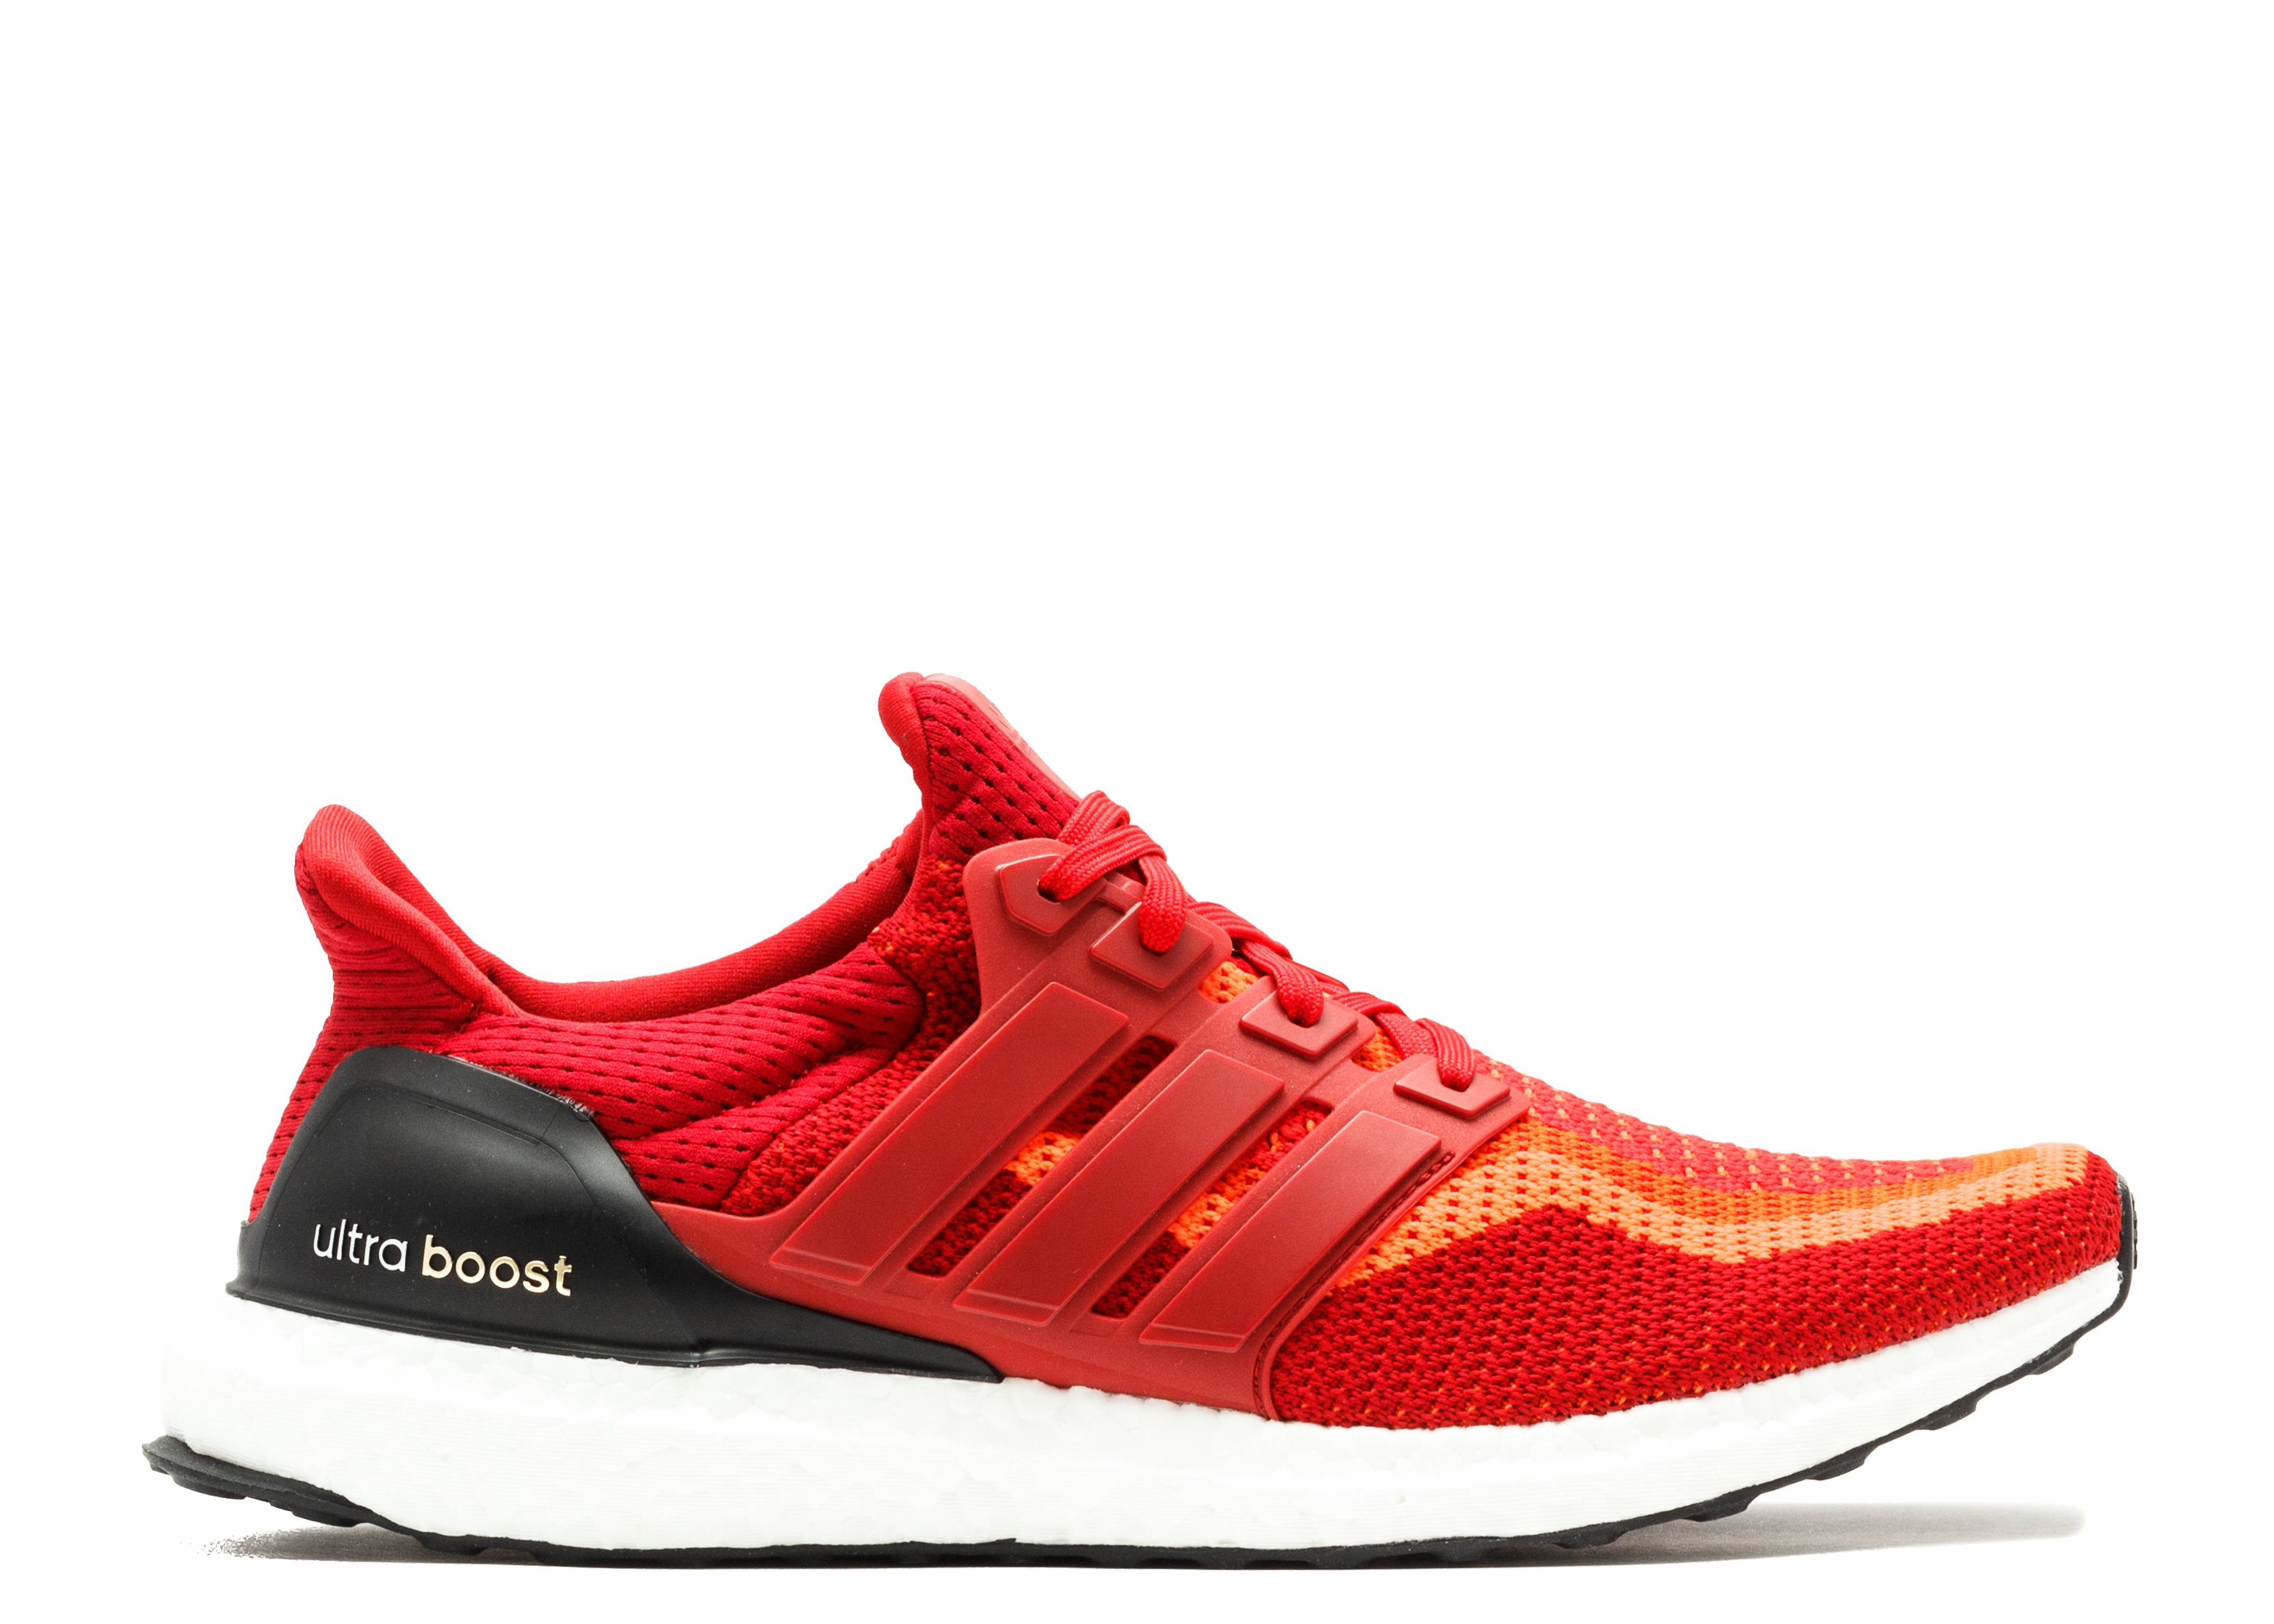 Details about adidas Ultra Boost 2.0 Mens Solar Red Running Shoes AQ4006 UltraBOOST 7.5 & 8.5